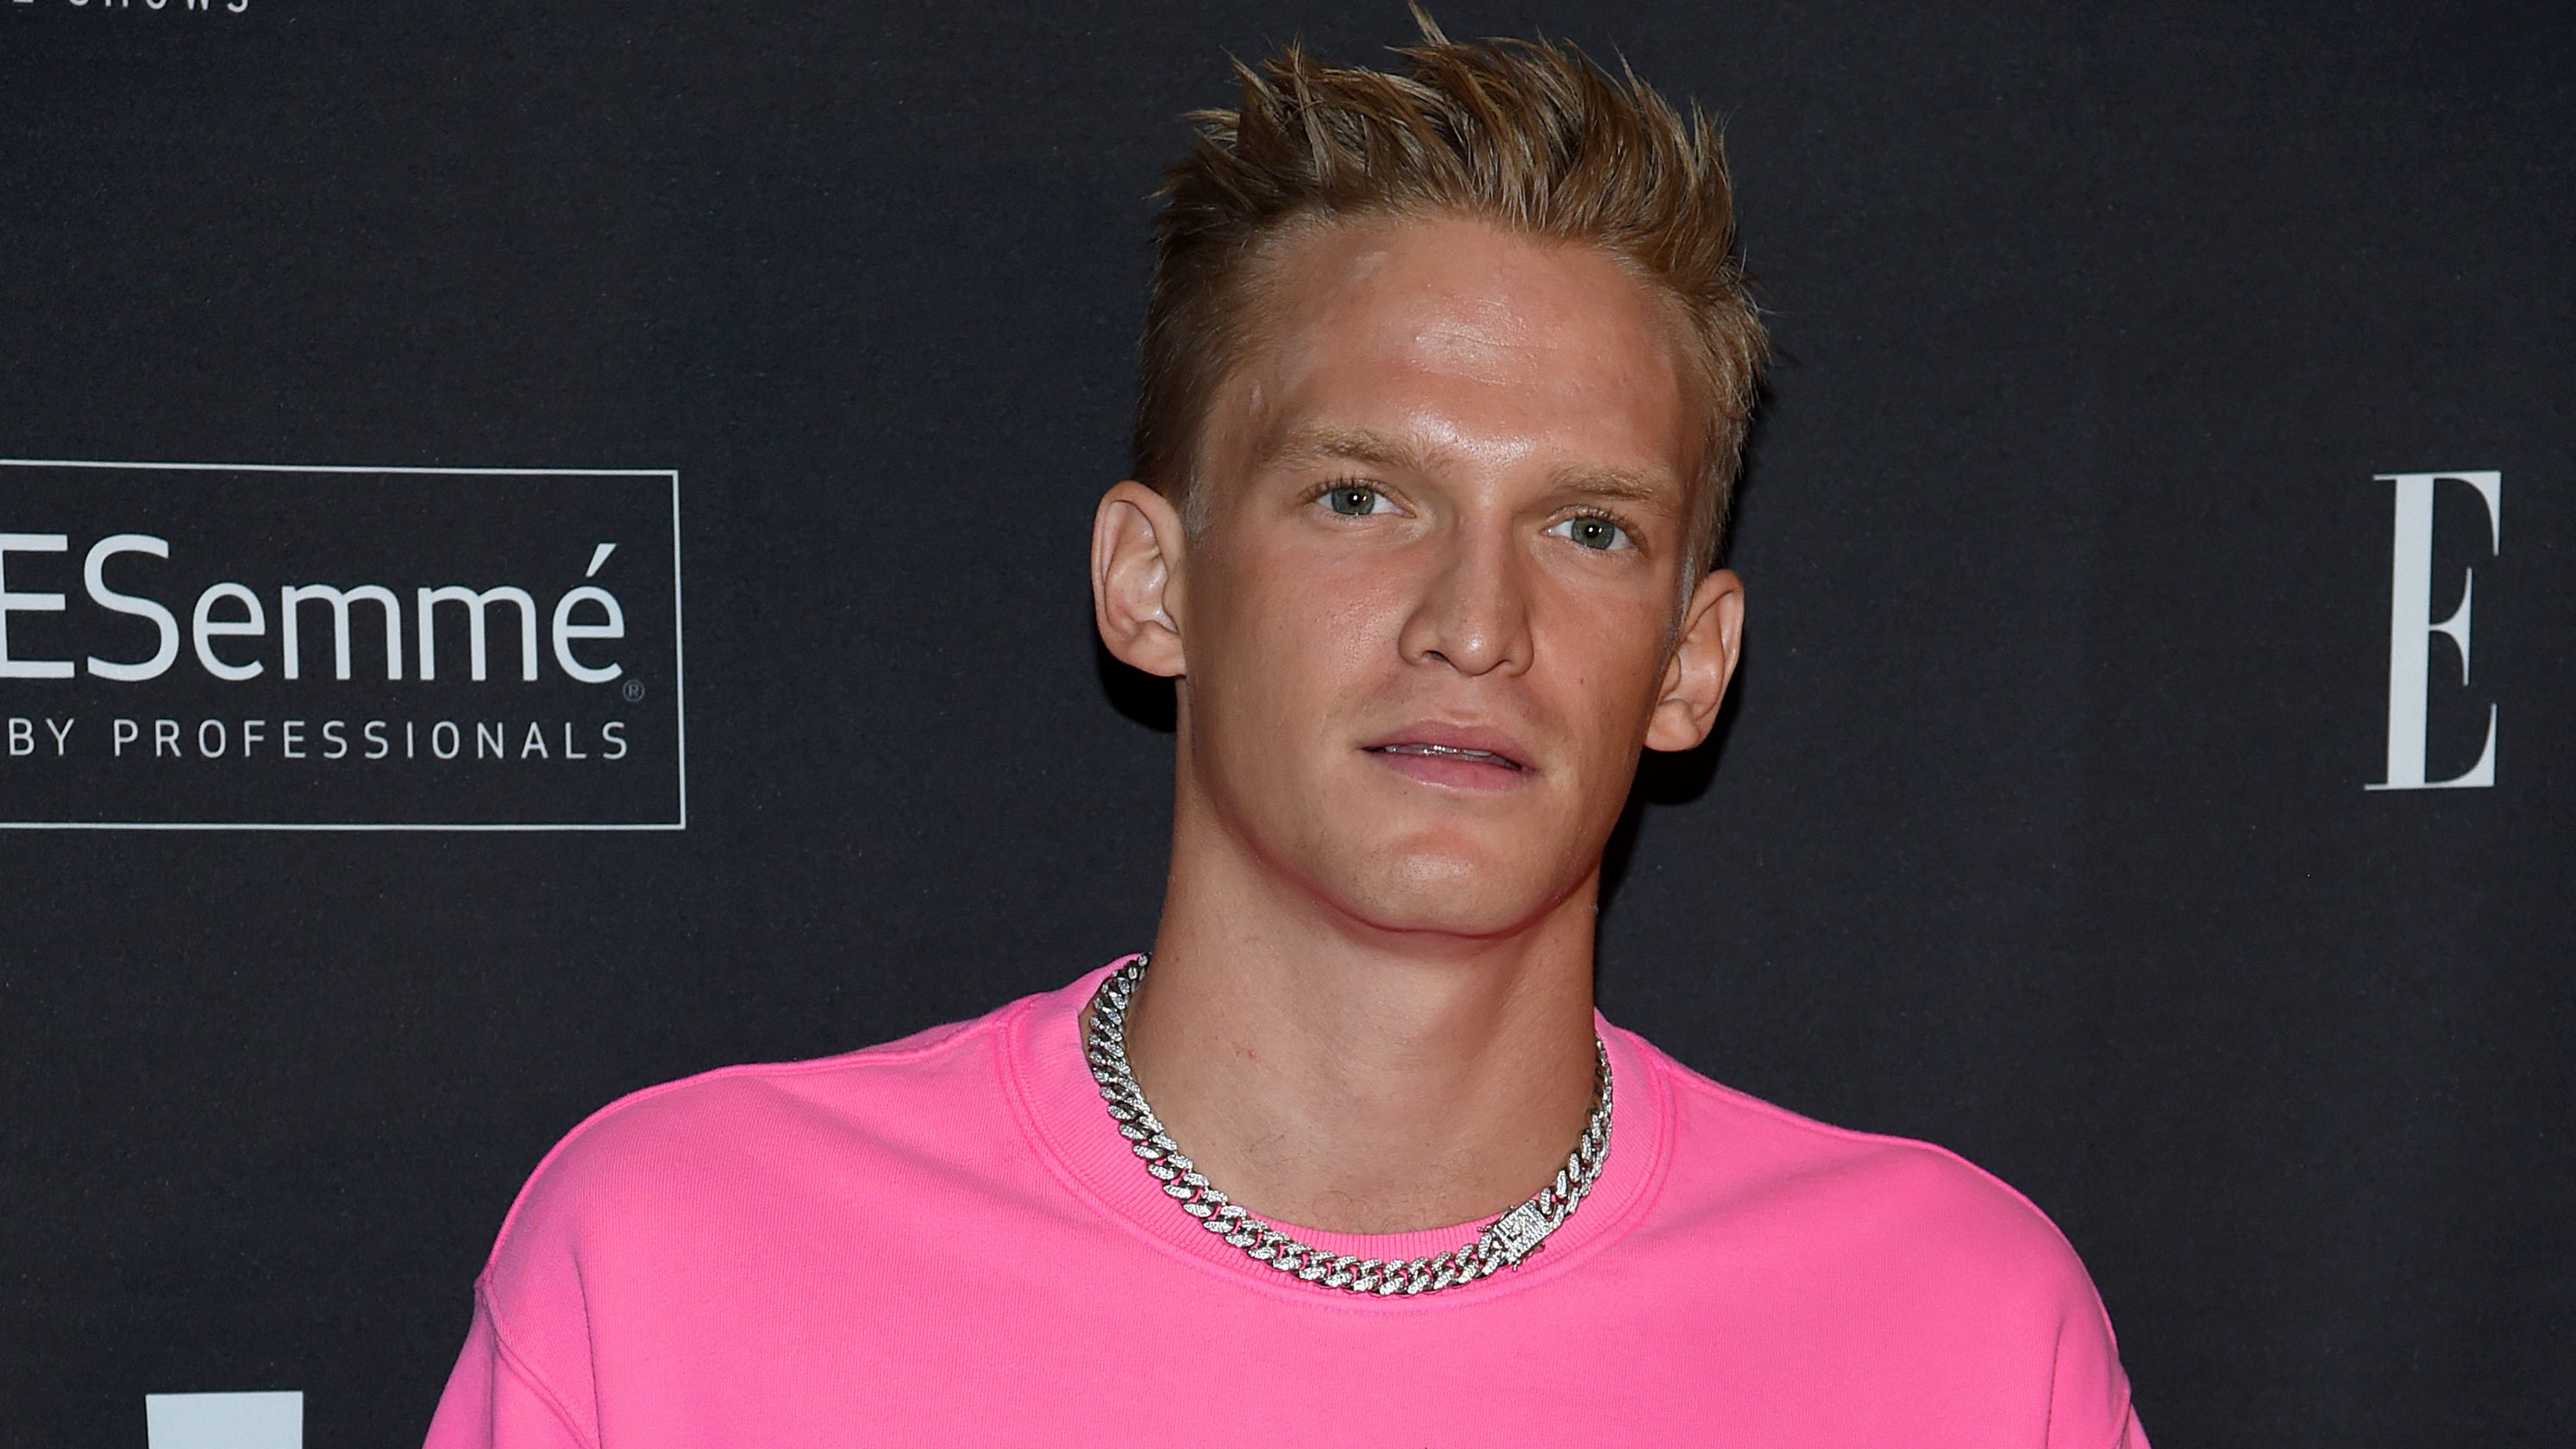 Who is Cody Simpson? A look at the man who might be Miley Cyrus' new flame